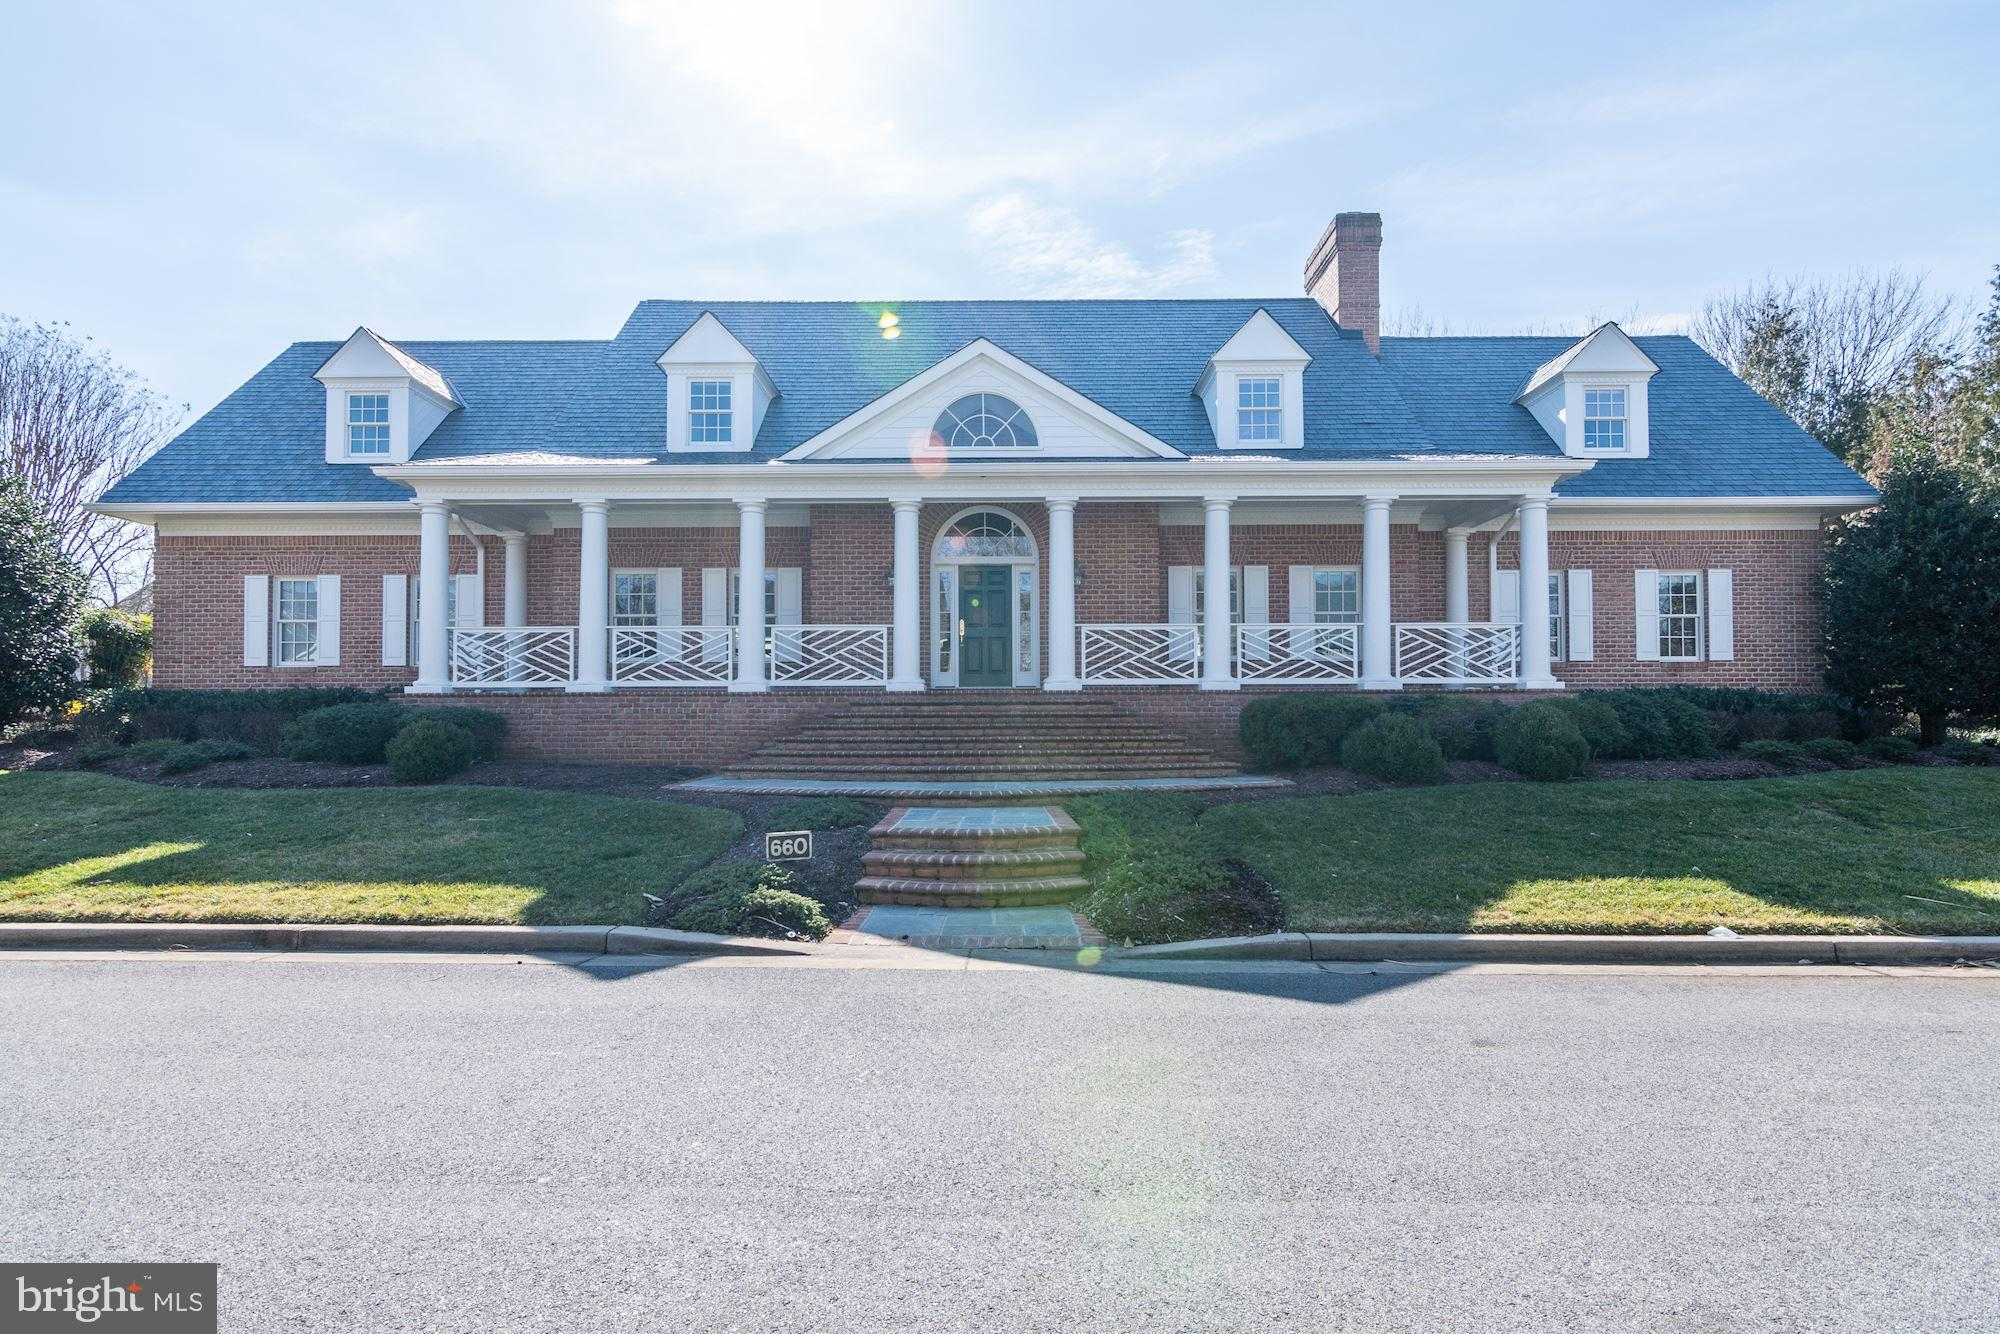 660 S RIVER LANDING ROAD, EDGEWATER, MD 21037